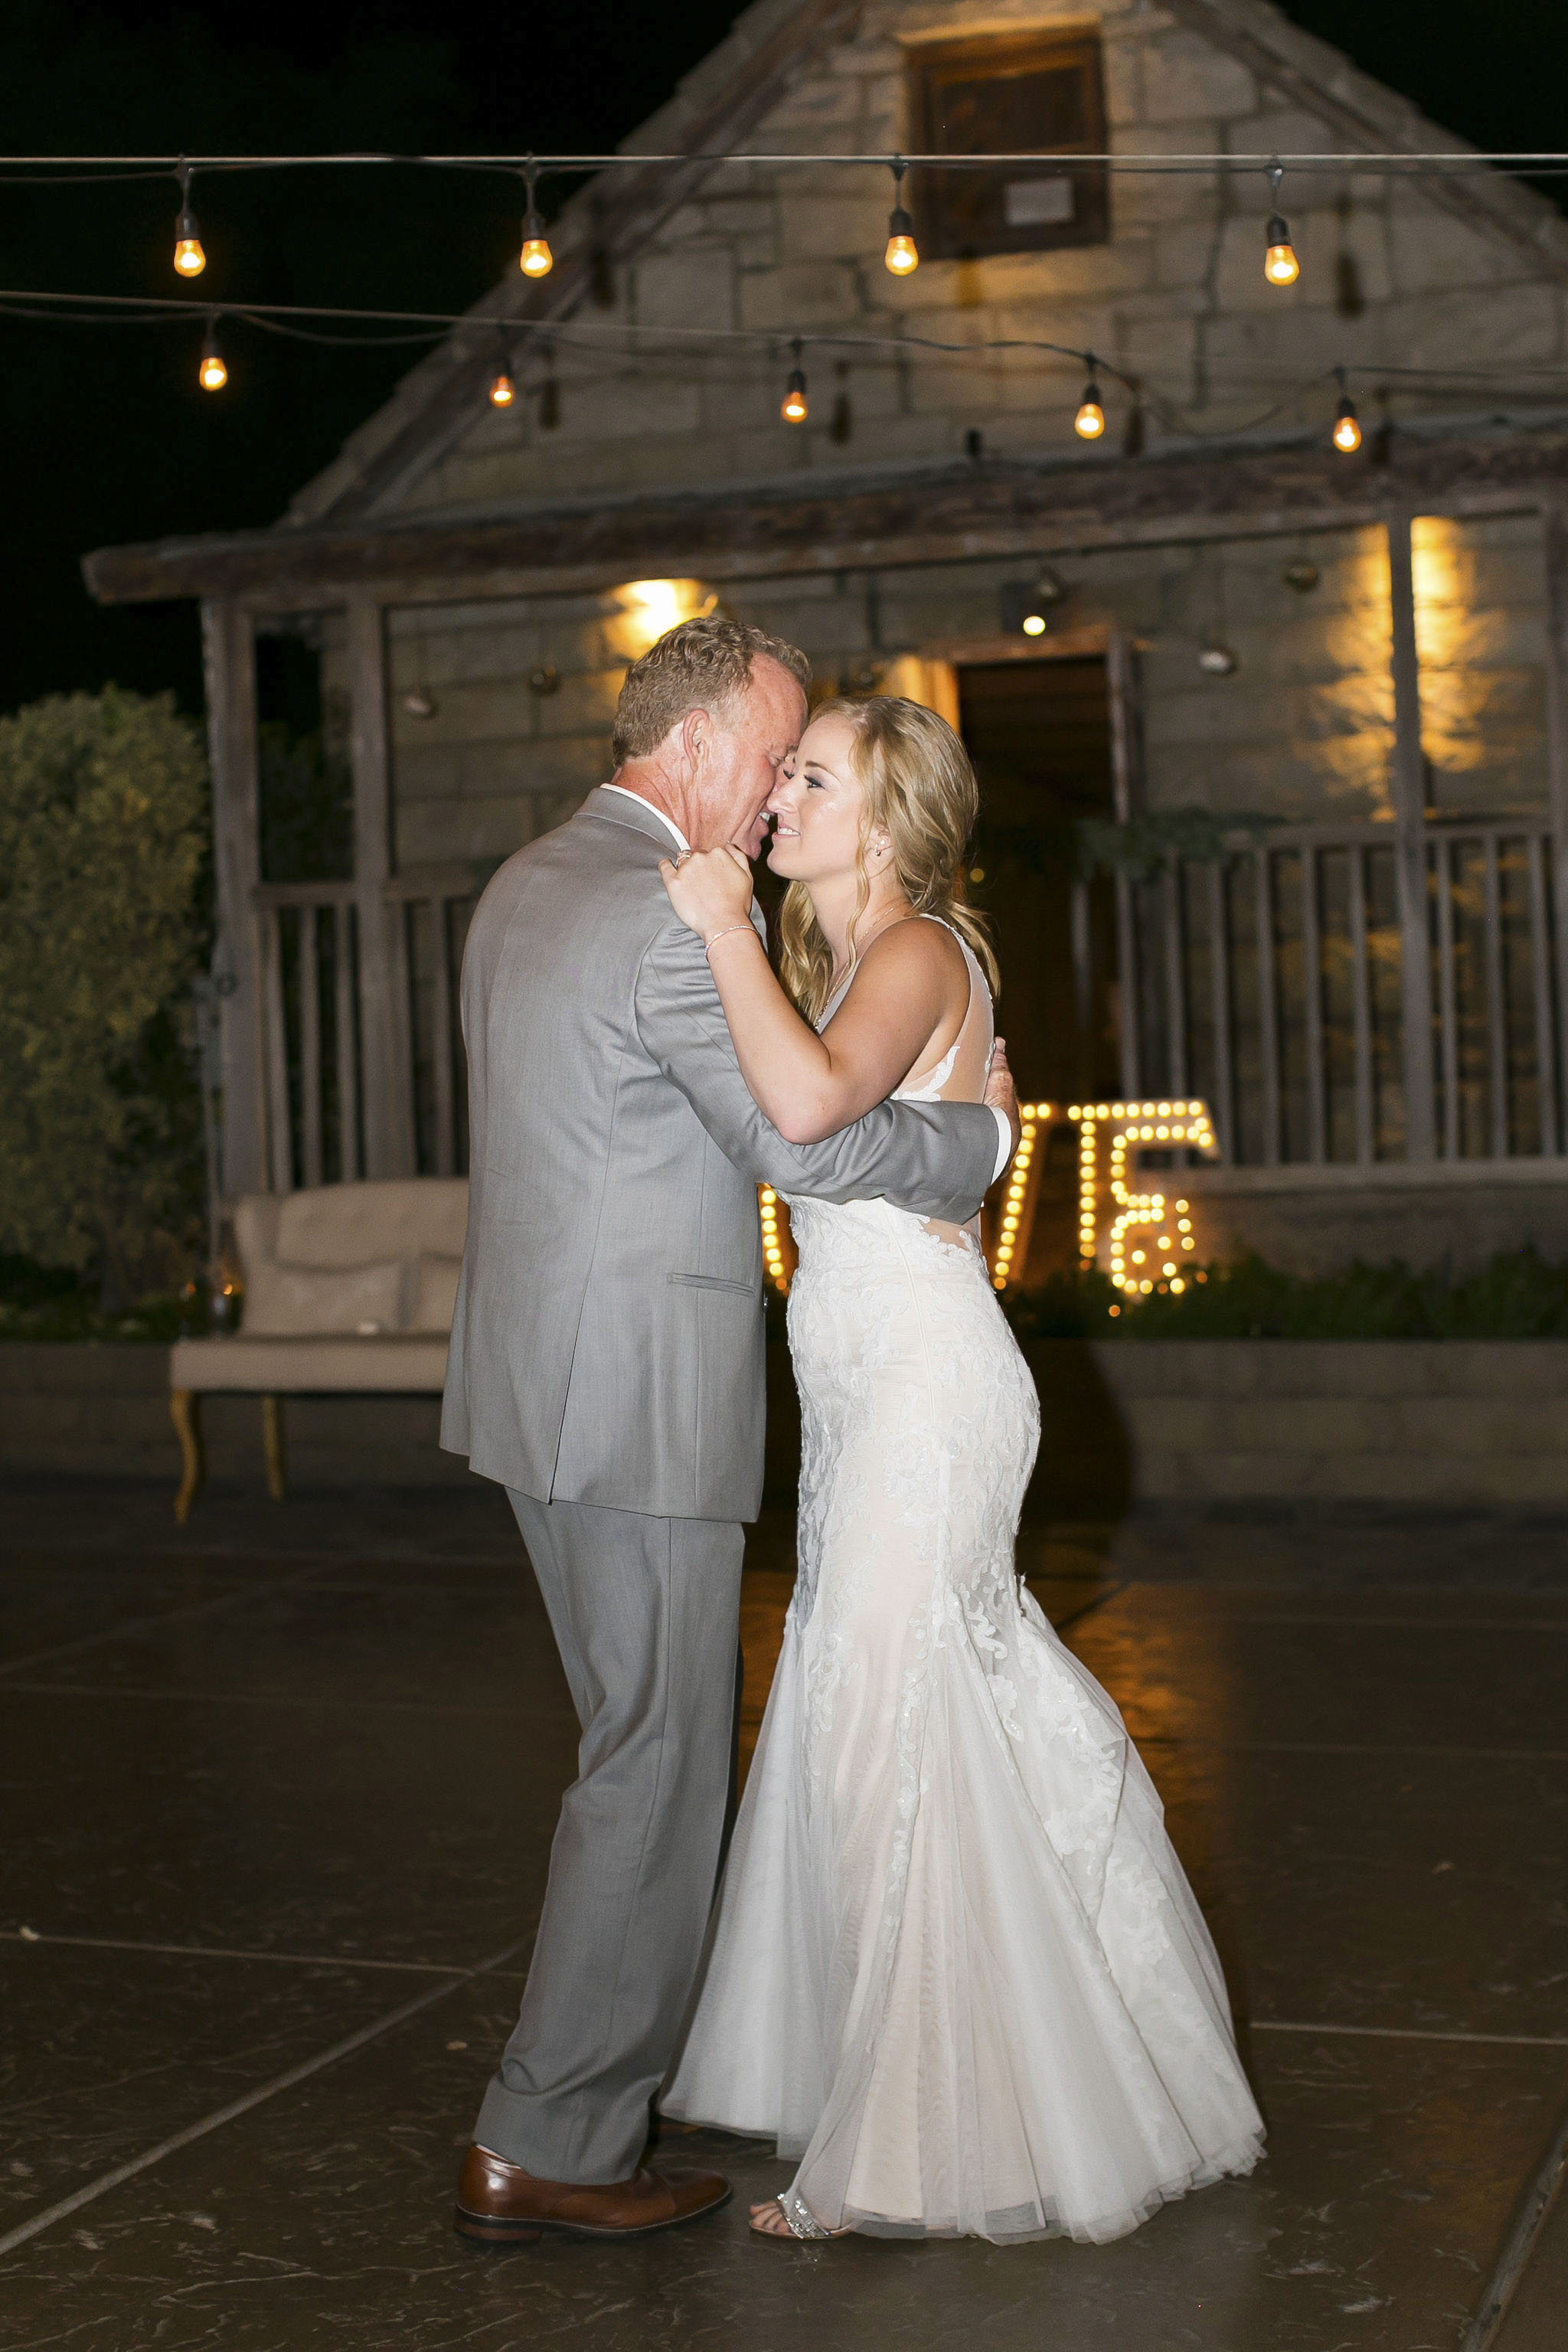 Domenica Beauty _ Hair and Makeup Artist _Wedding _ Temecula, CA _ Alexandra and Corey _ 38.JPG